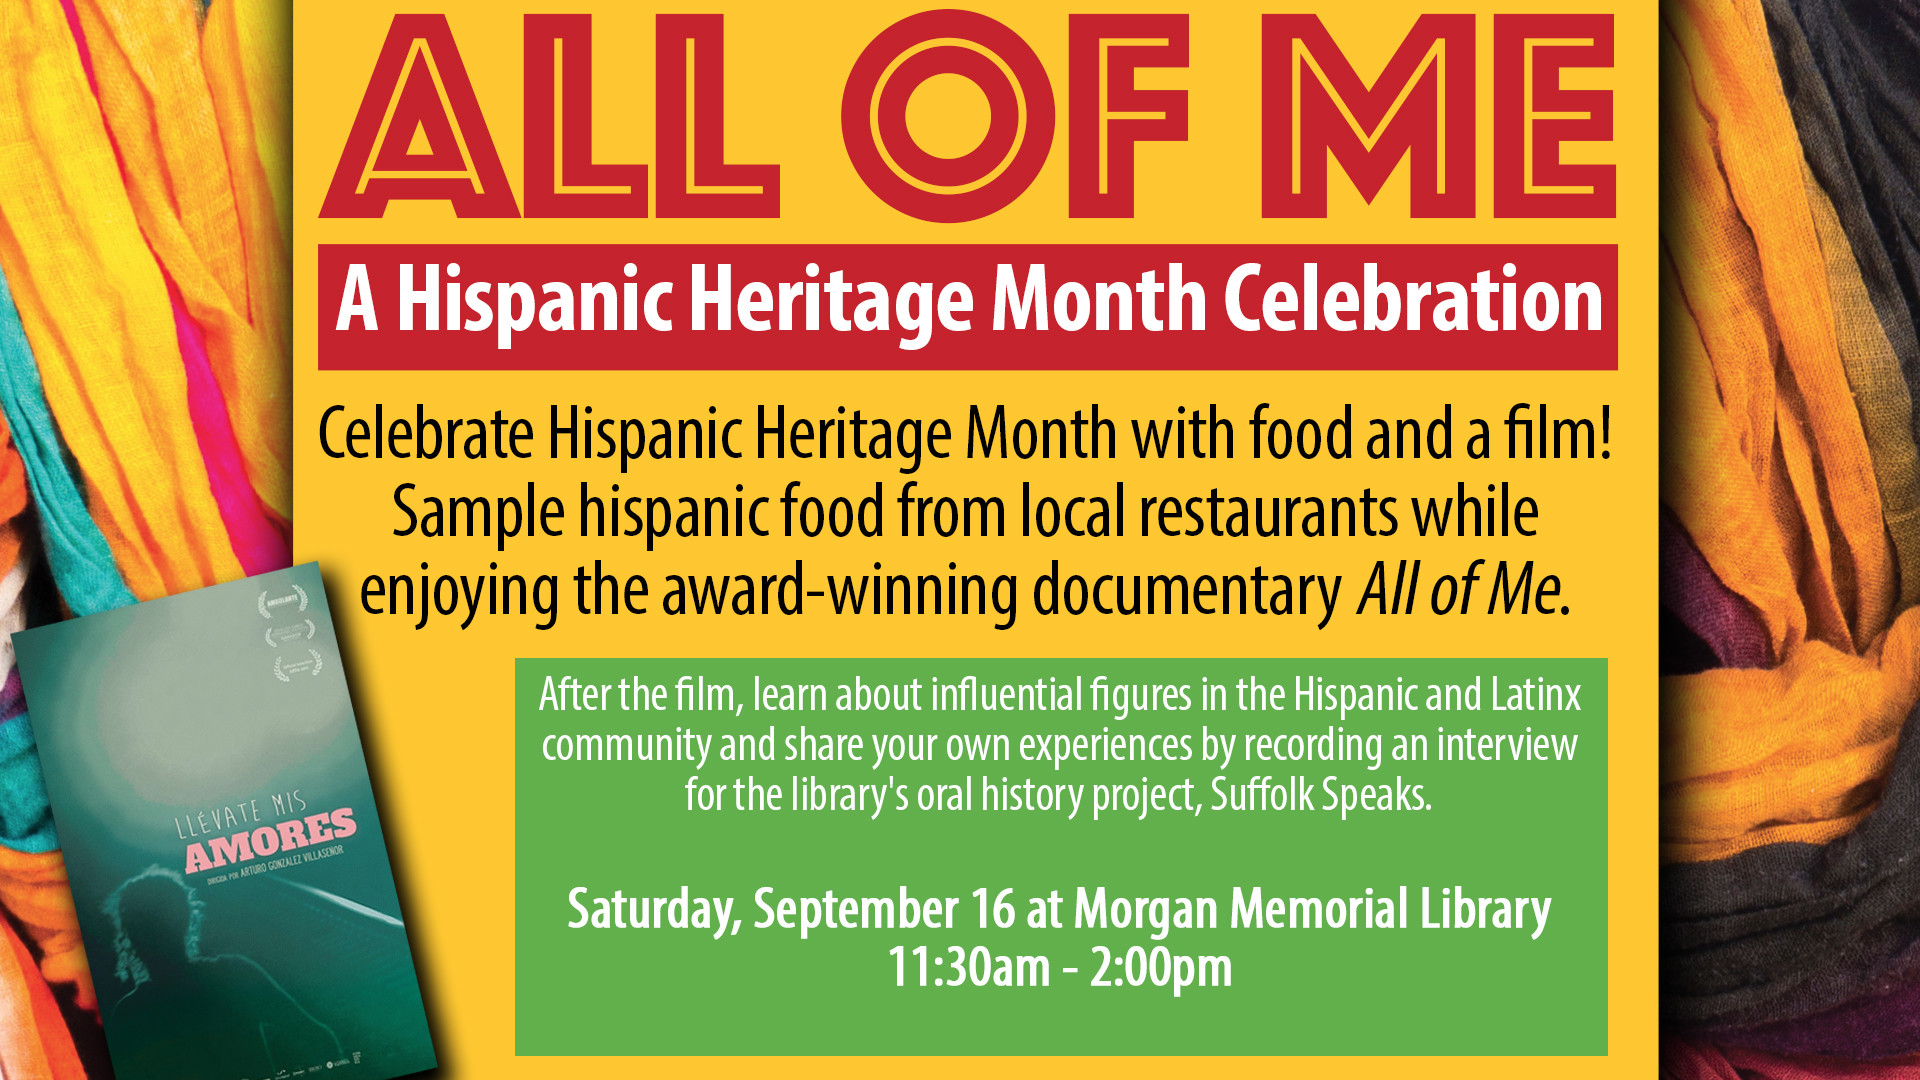 1920x1080 All of Me: A Hispanic Heritage Month Celebration - Virginia Is For Lovers